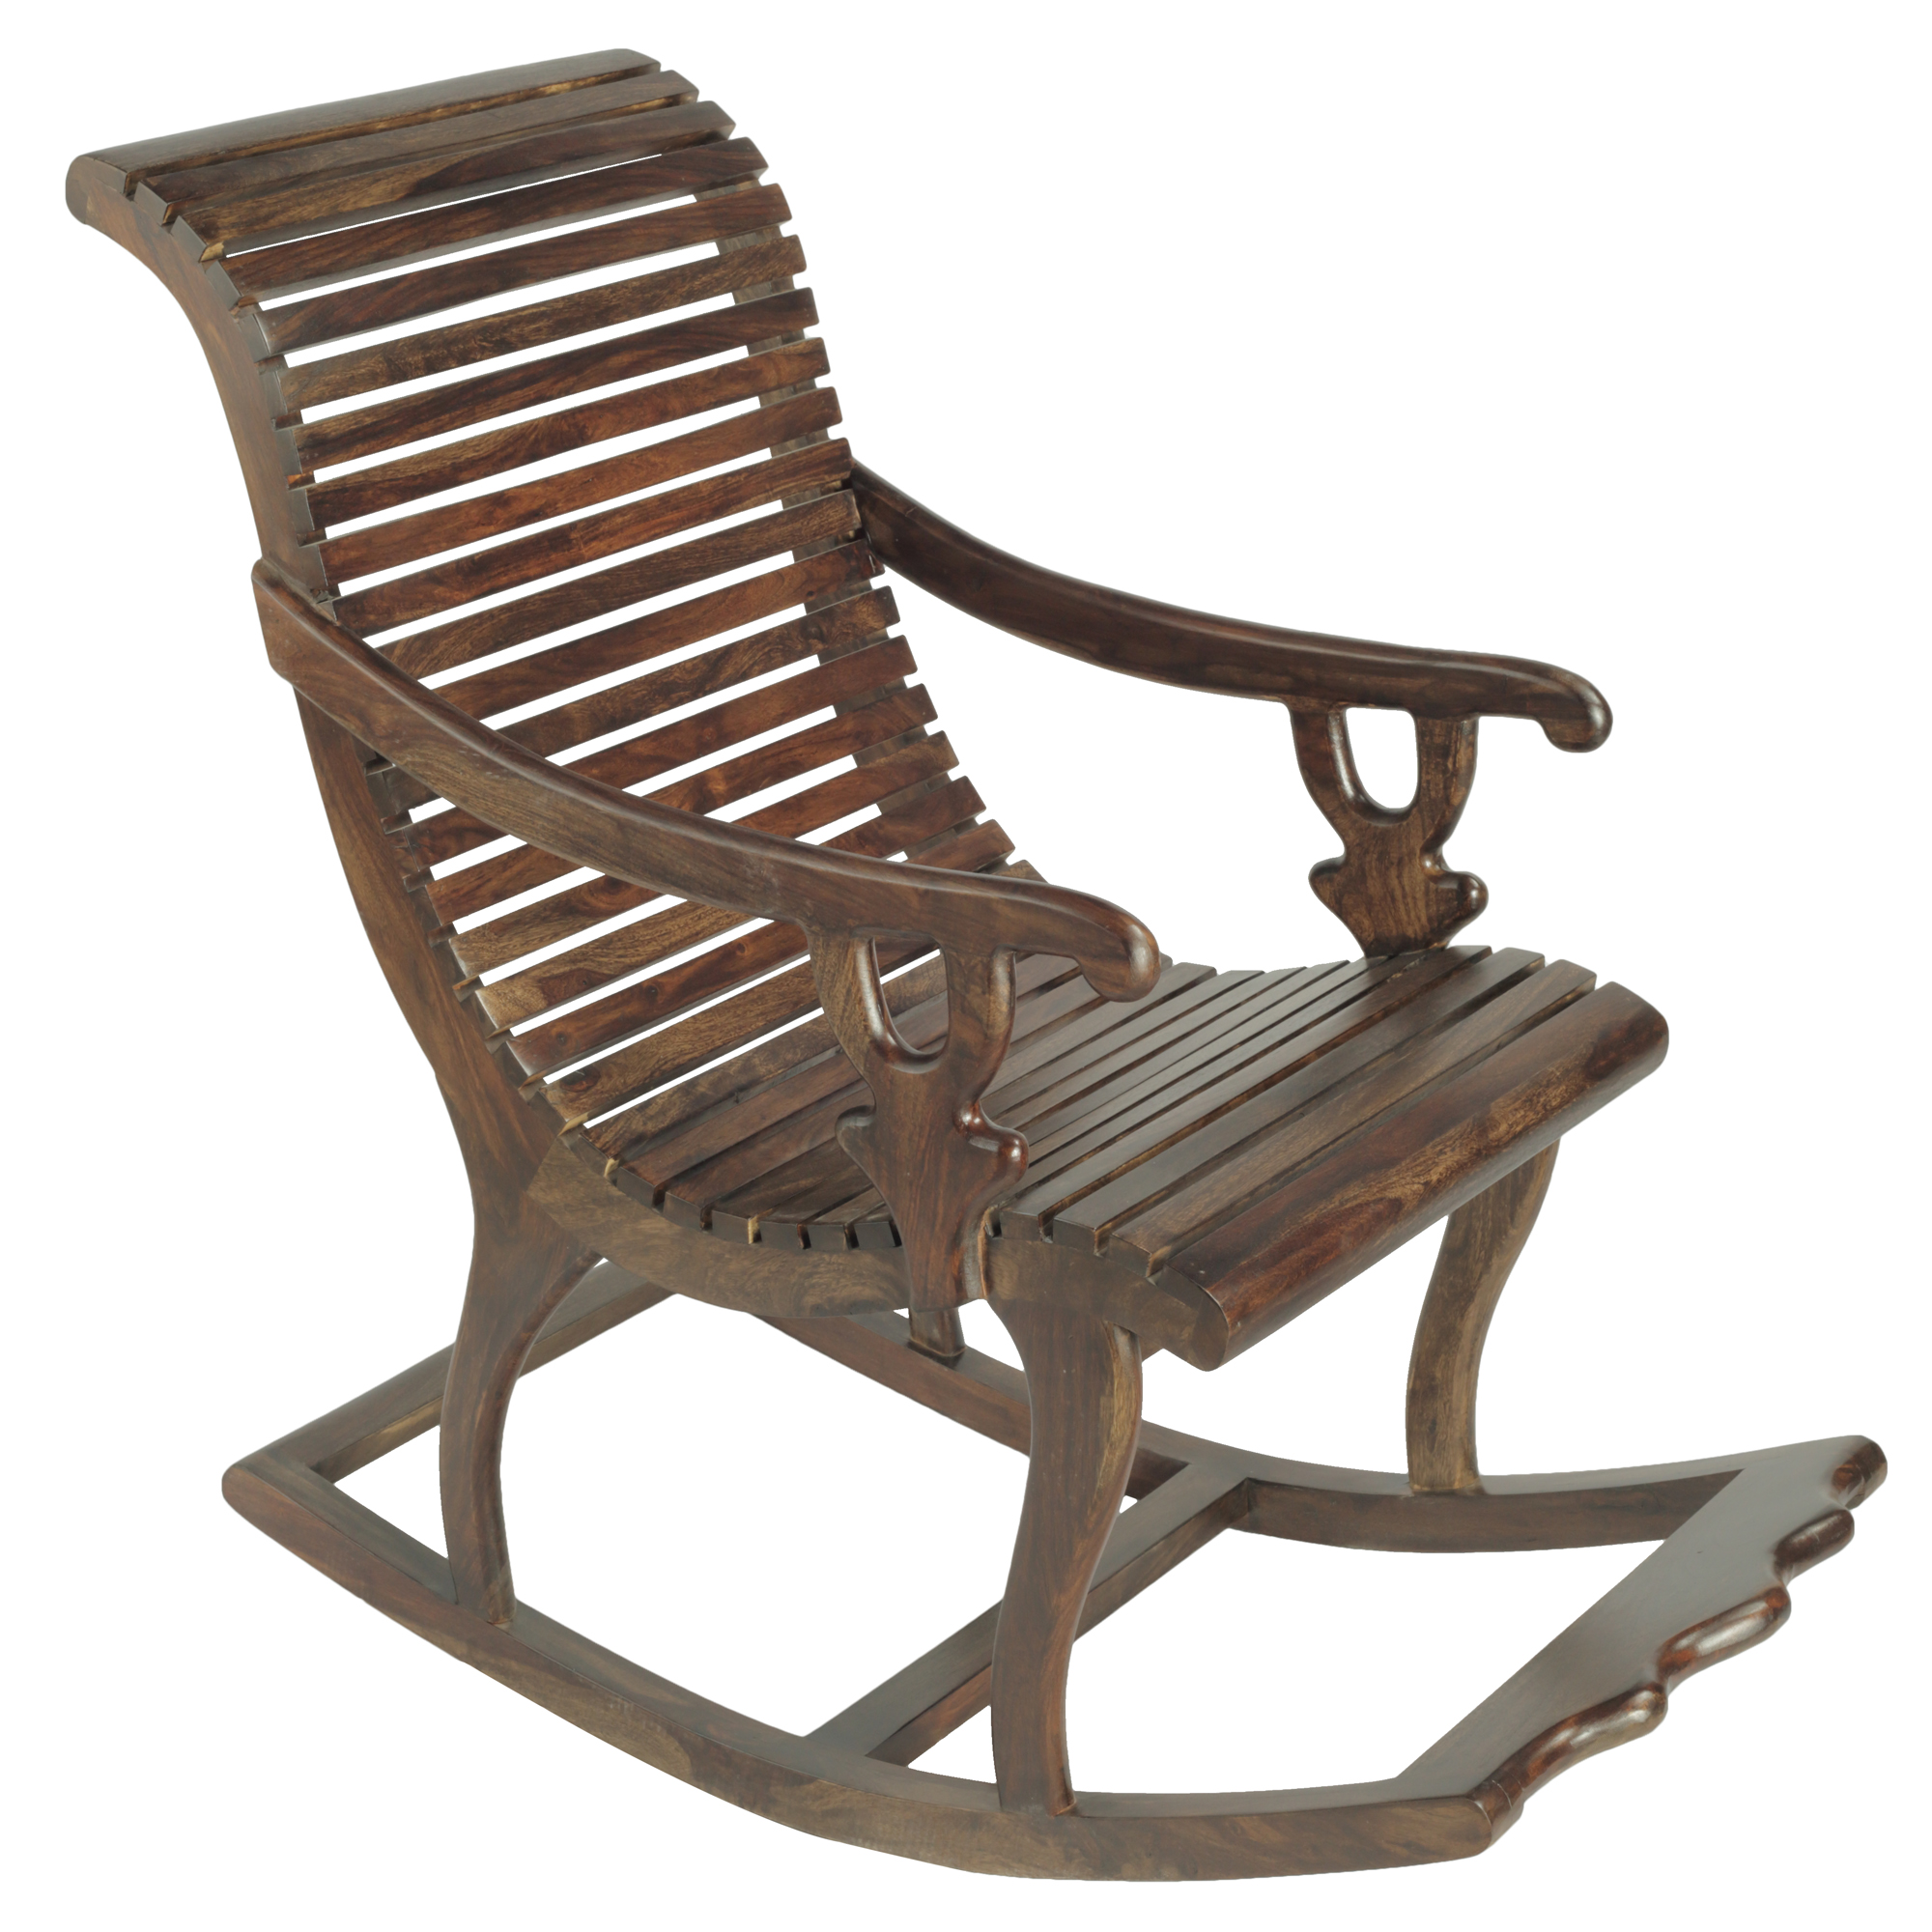 Pranya Solidwood Rocking Chair in Provincial Teak Finish